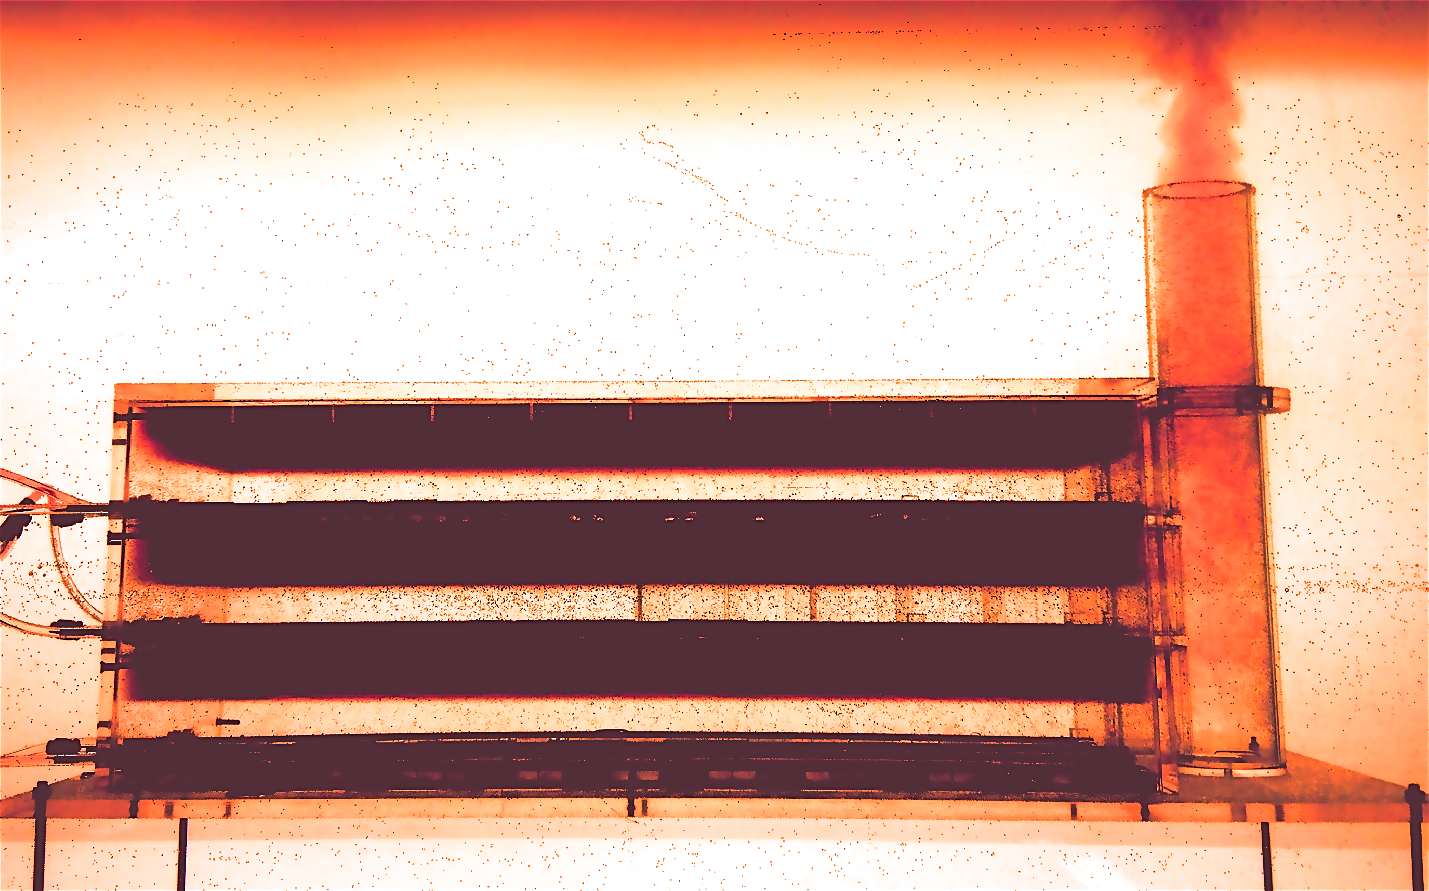 1:50 scale model of a naturally ventilated three-storey building with an exhaust stack. Saline, dyed red, is supplied to the storeys to model heat generated by people and equipment. The buoyant air rises upwards and leaves the building through the stack, causing fresh air to be drawn into the storeys through floor-level ventilation openings. Note that this photo is upside-down!